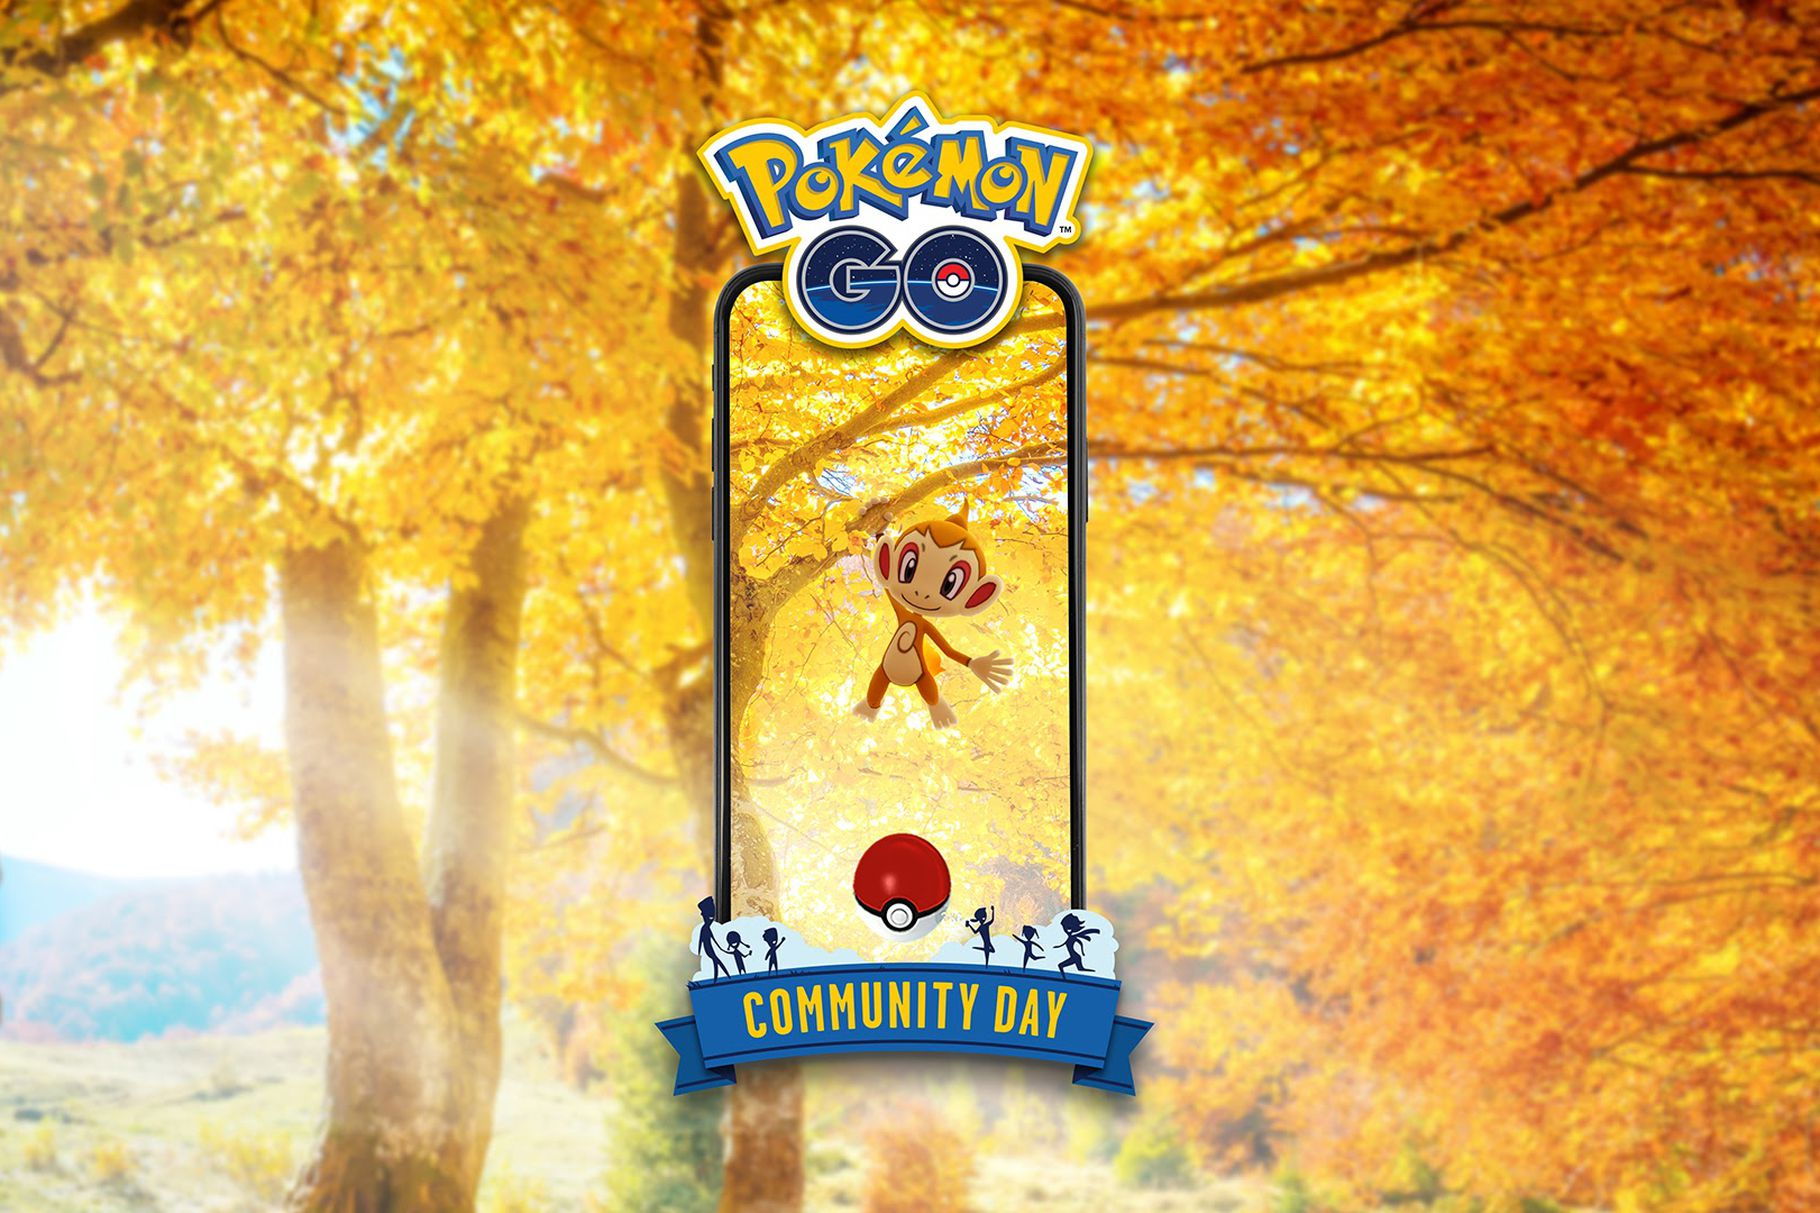 POKÉMON GO' HALLOWEEN 2019 EVENT: FULL INFORMATION AND EVERYTHING YOU NEED TO KNOW